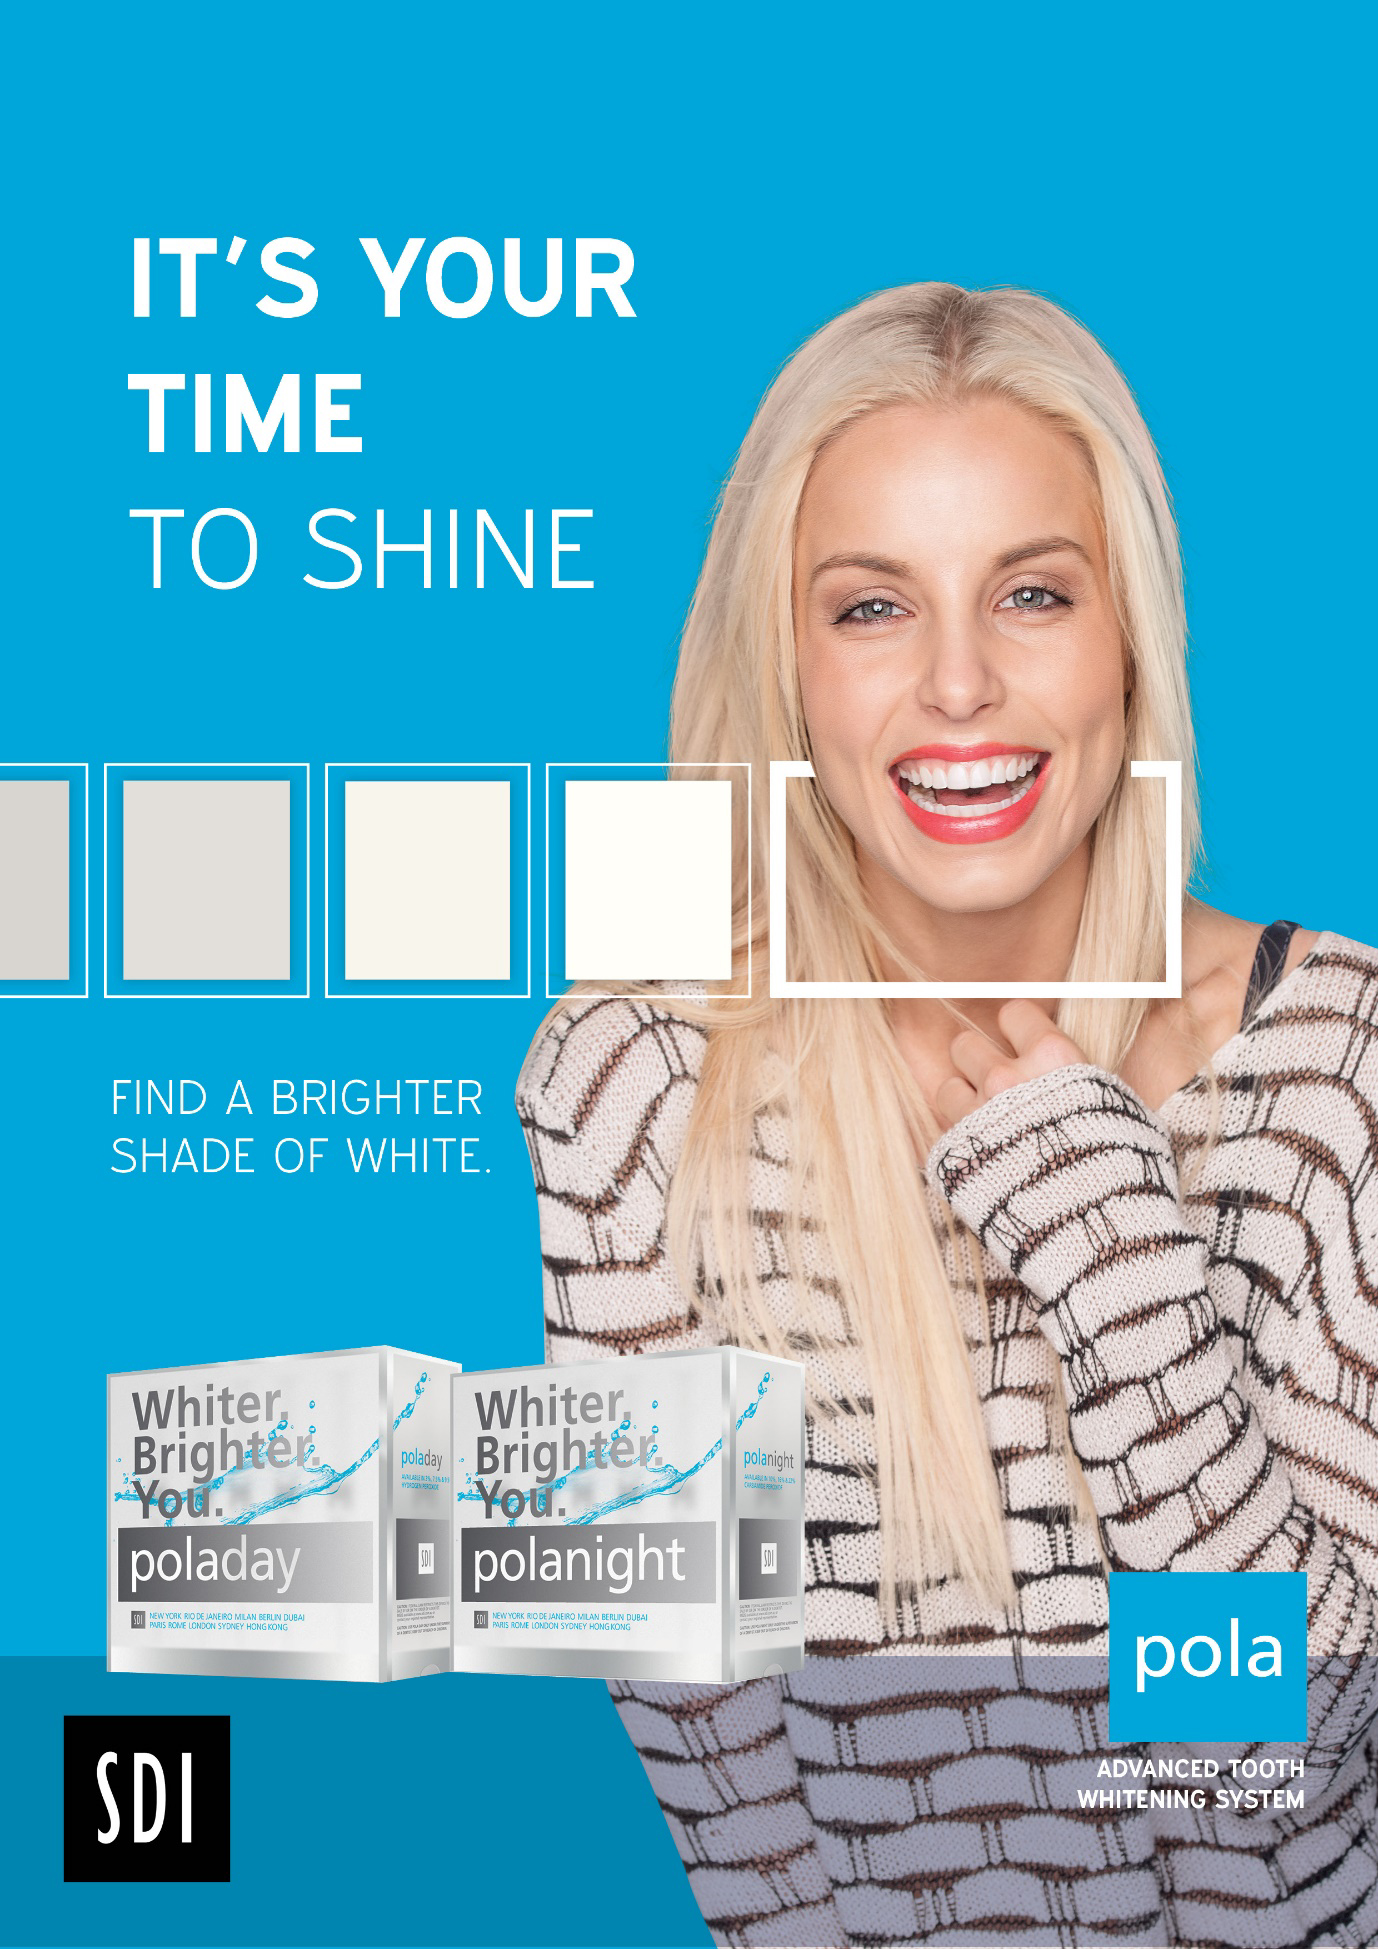 My Teeth are dark  Is whitening for me? - Tauranga Crossing